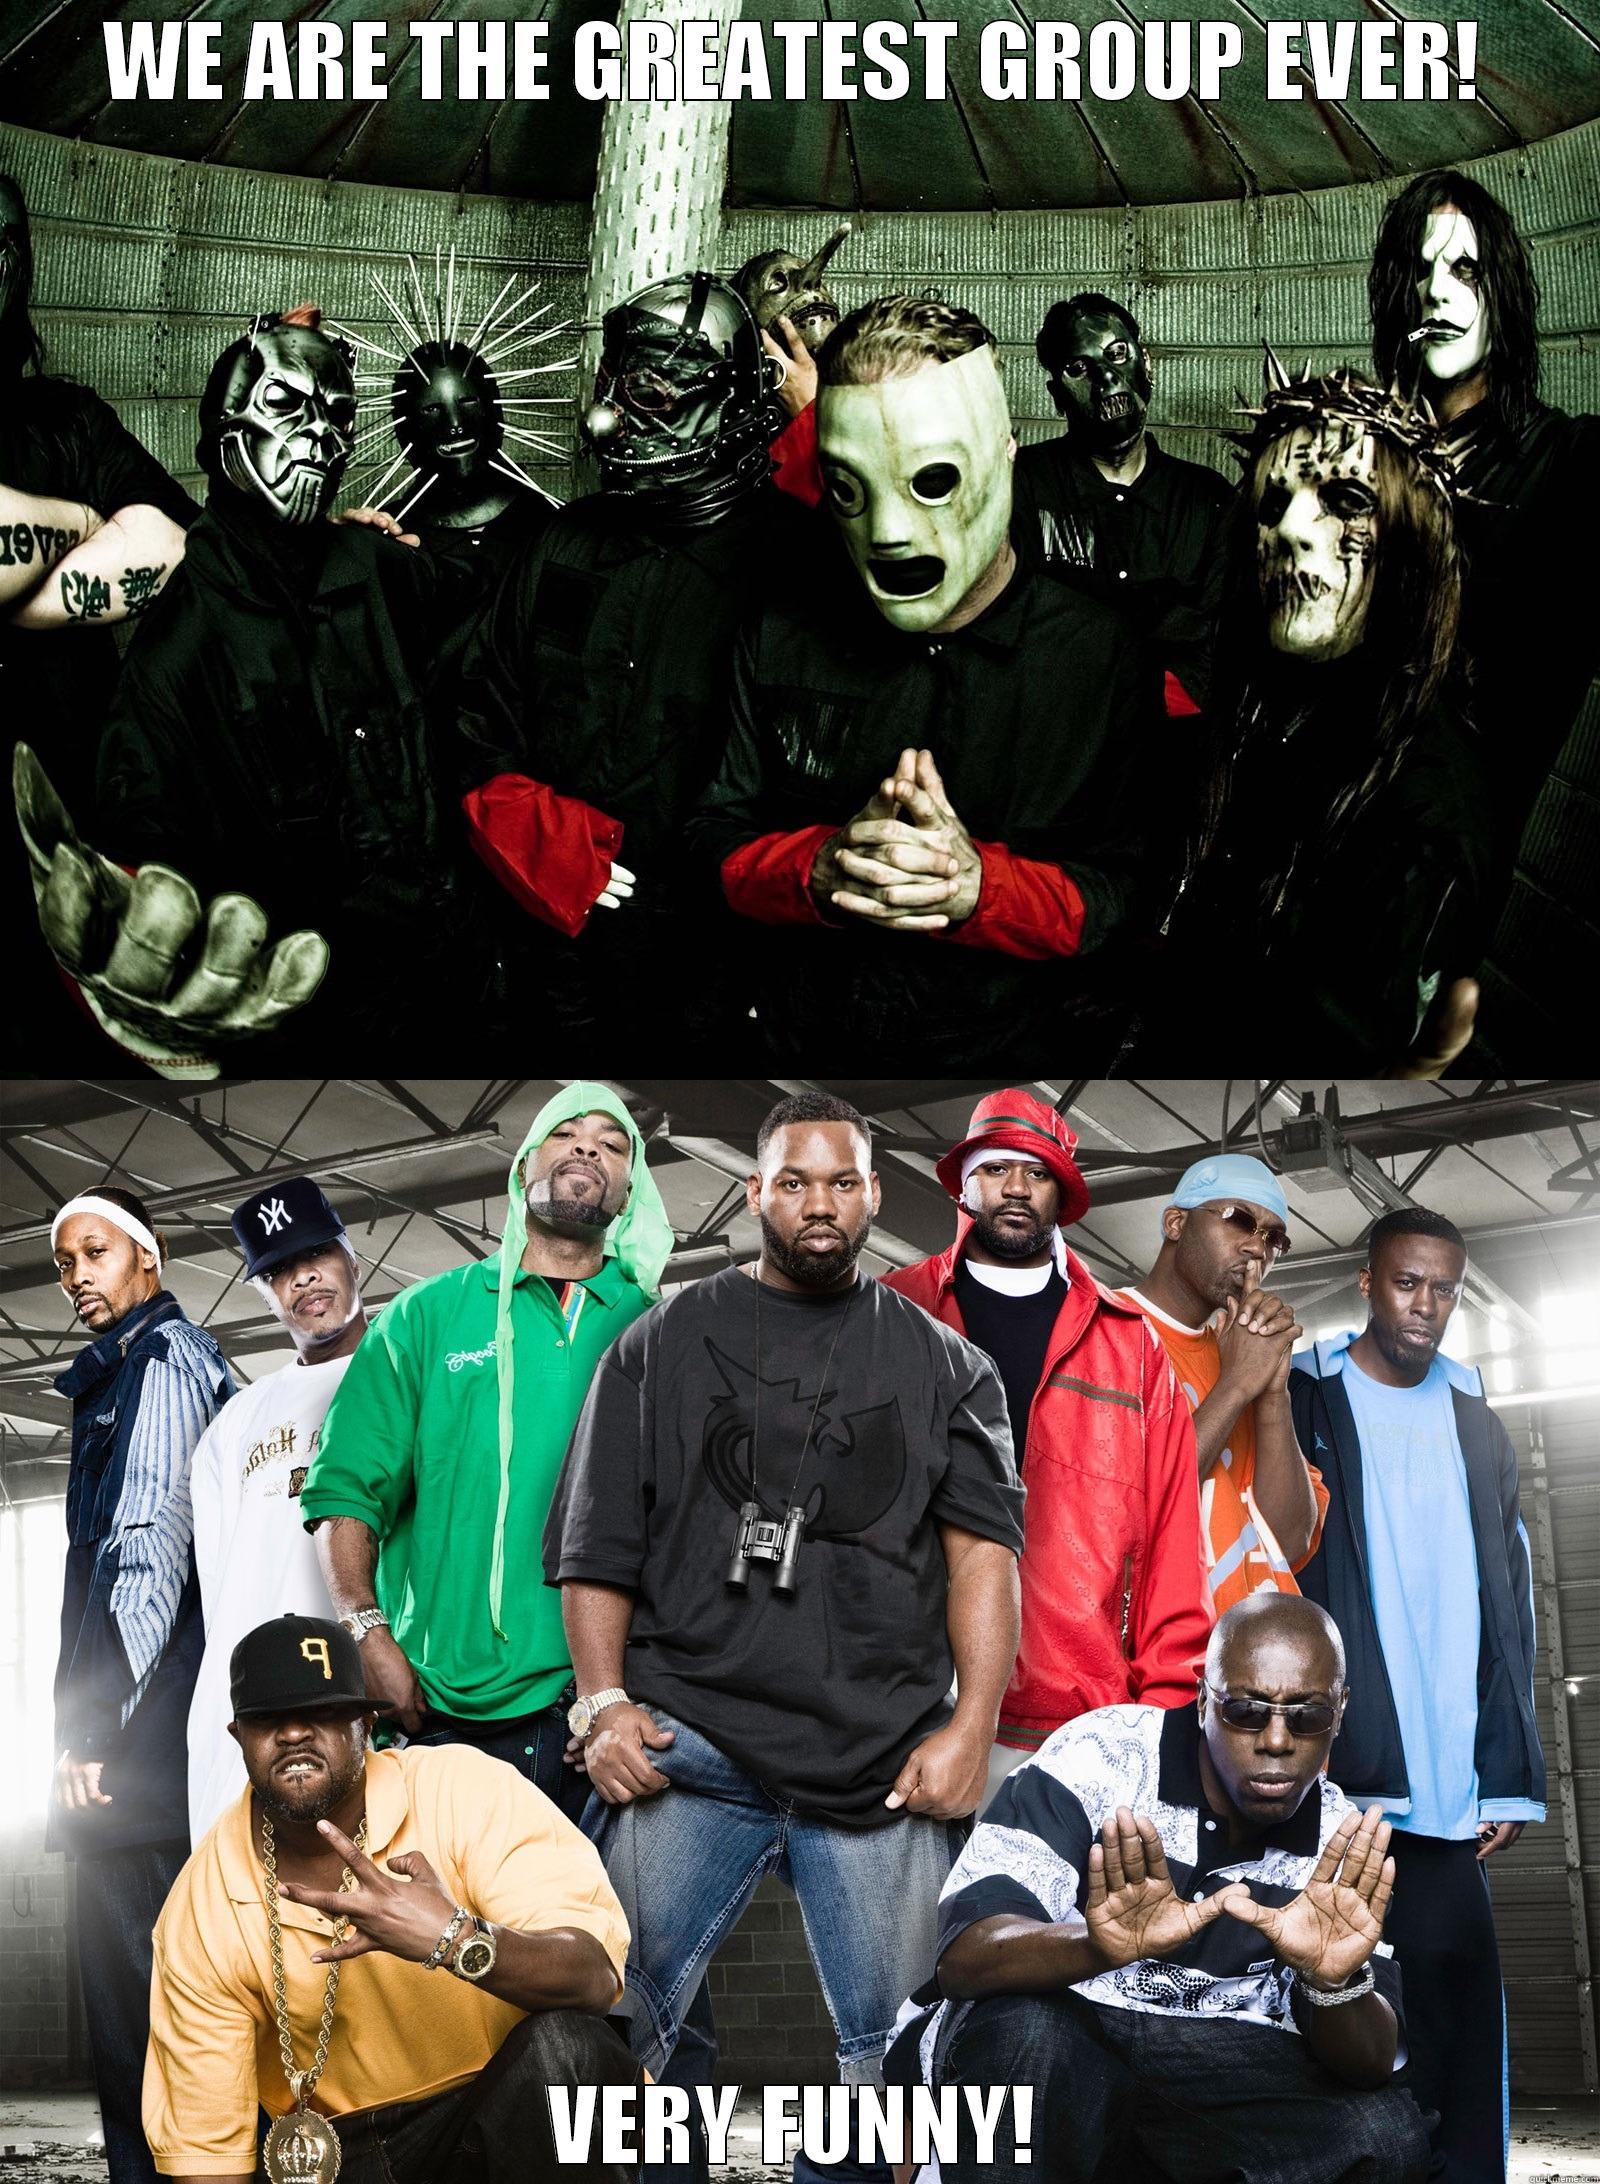 Slipknot and Wu-Tang Clan - WE ARE THE GREATEST GROUP EVER! VERY FUNNY! Misc